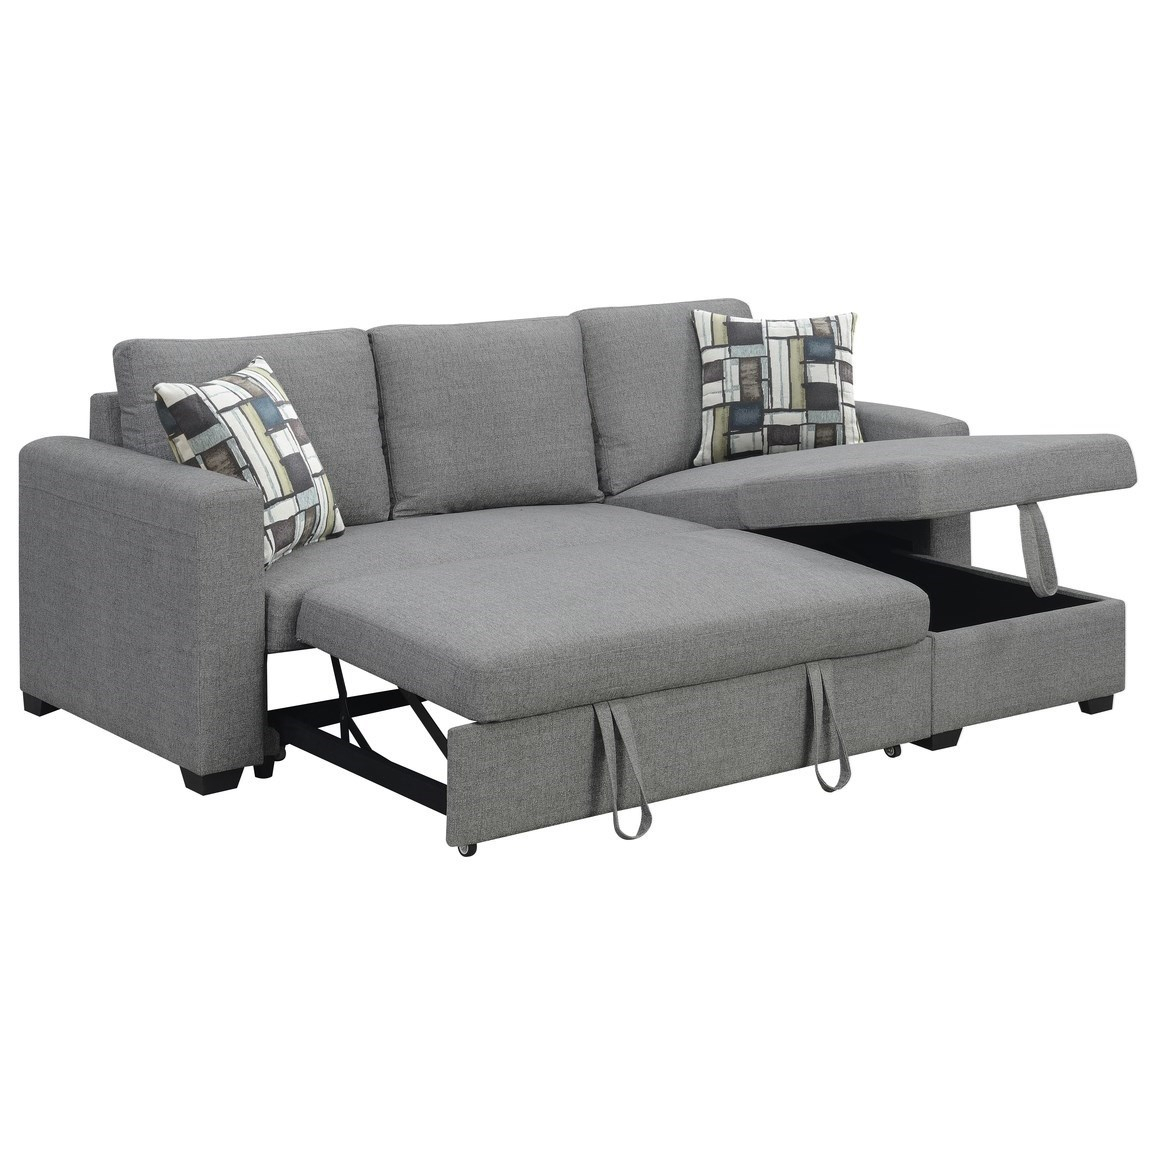 Langley 2 Piece Sectional With Reversible Chaise   Sadler With Palisades Reversible Small Space Sectional Sofas With Storage (View 9 of 15)